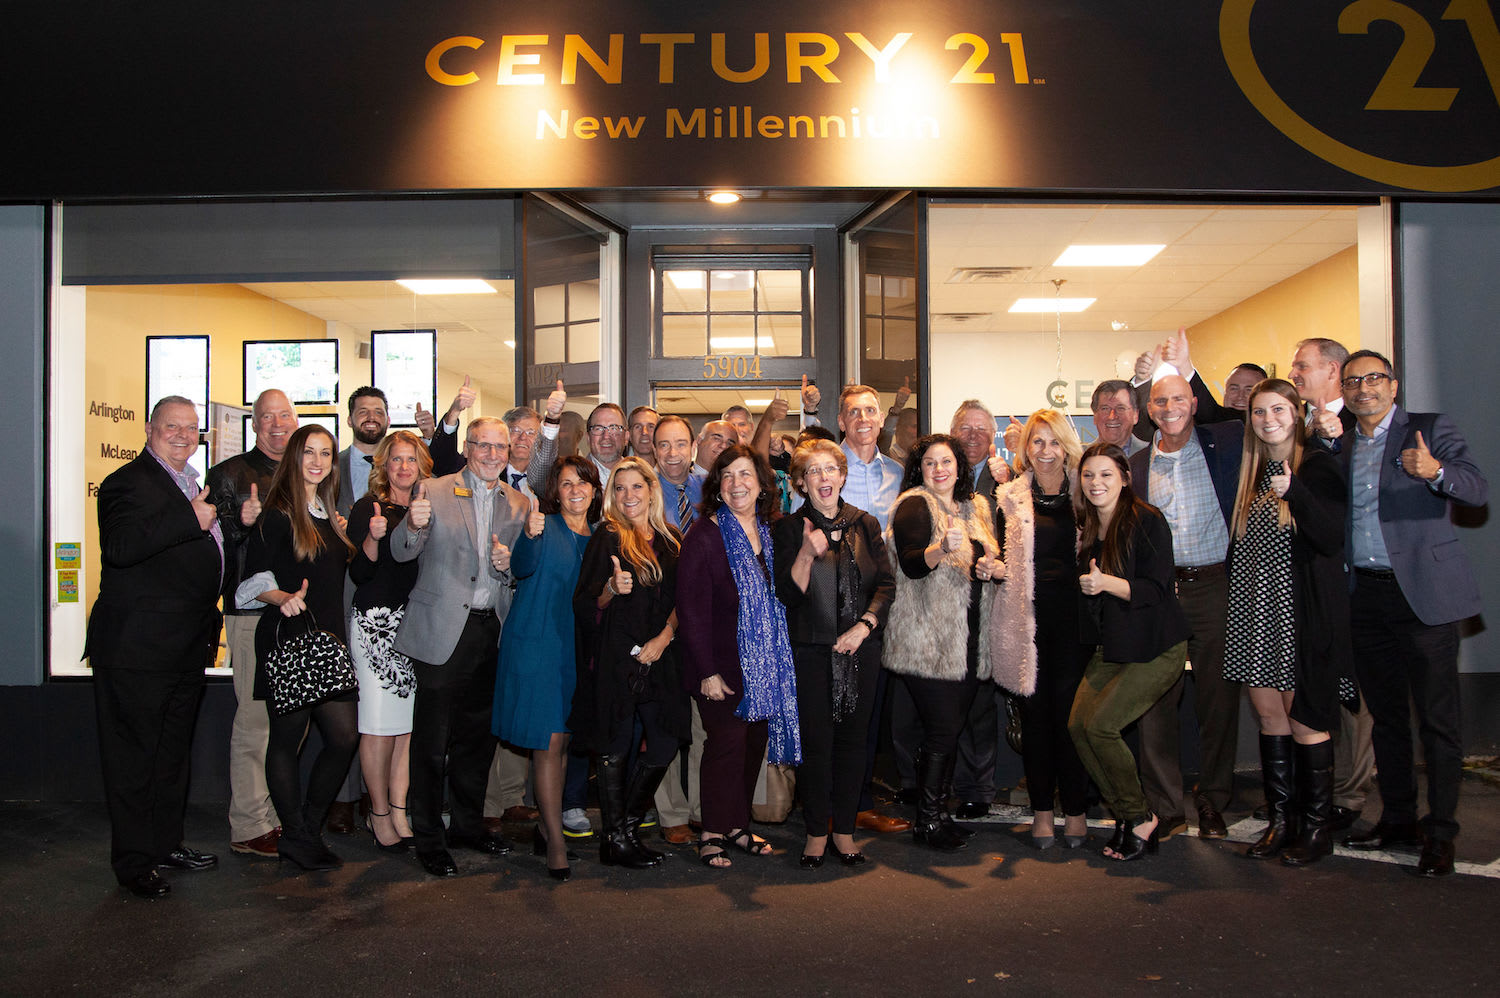 CENTURY 21 New Millennium, Staying One Step Ahead of the Competition with Updater